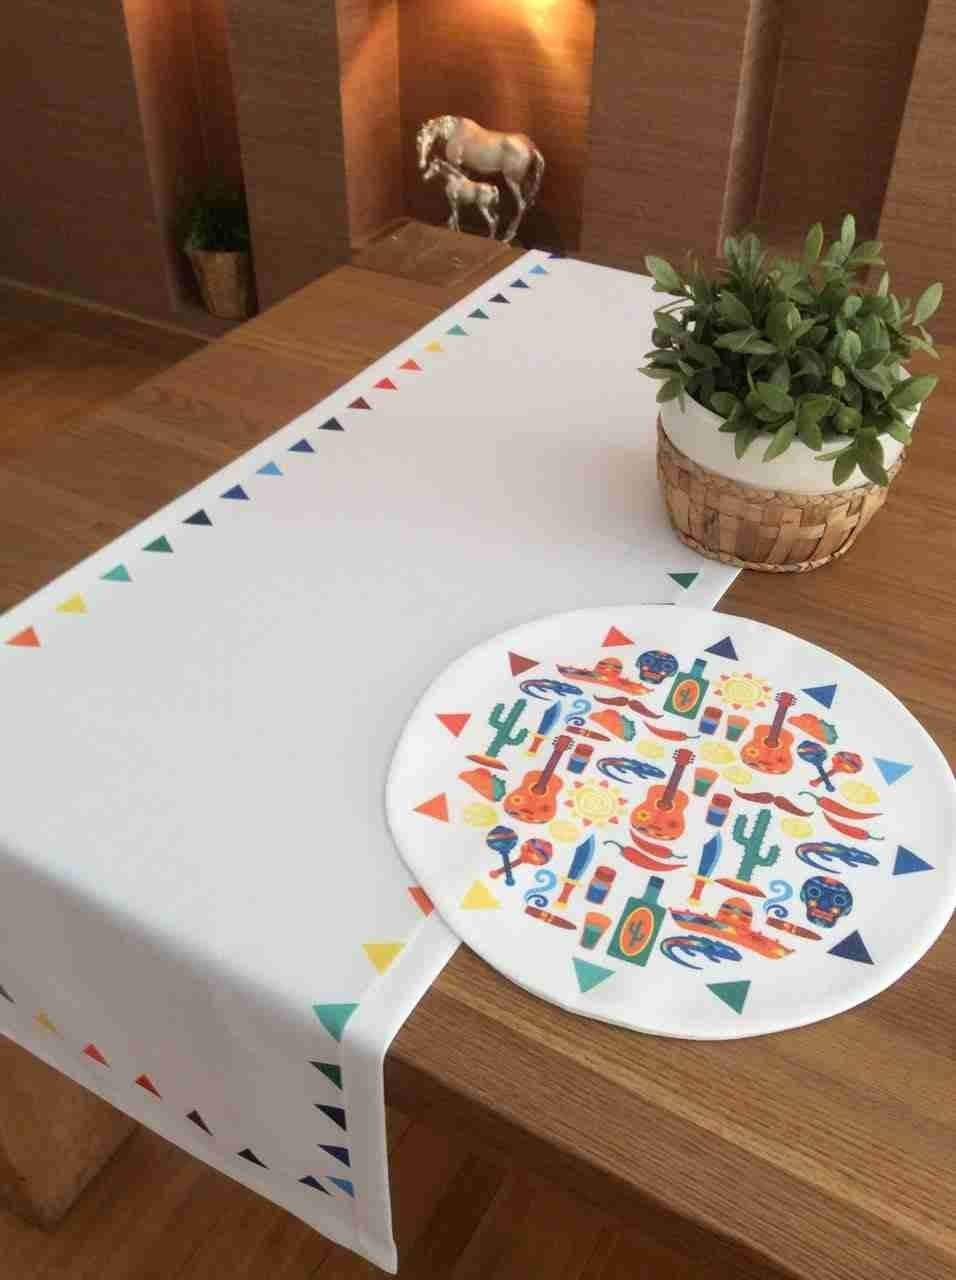 "TekgulDesign Amigos Placemats,%100 Polyester, Handmade, Diameter: 35cm (14""), Crease Resistant and Stain-Proof Fabric, Modern and Colorful Ultra HD Graphics."